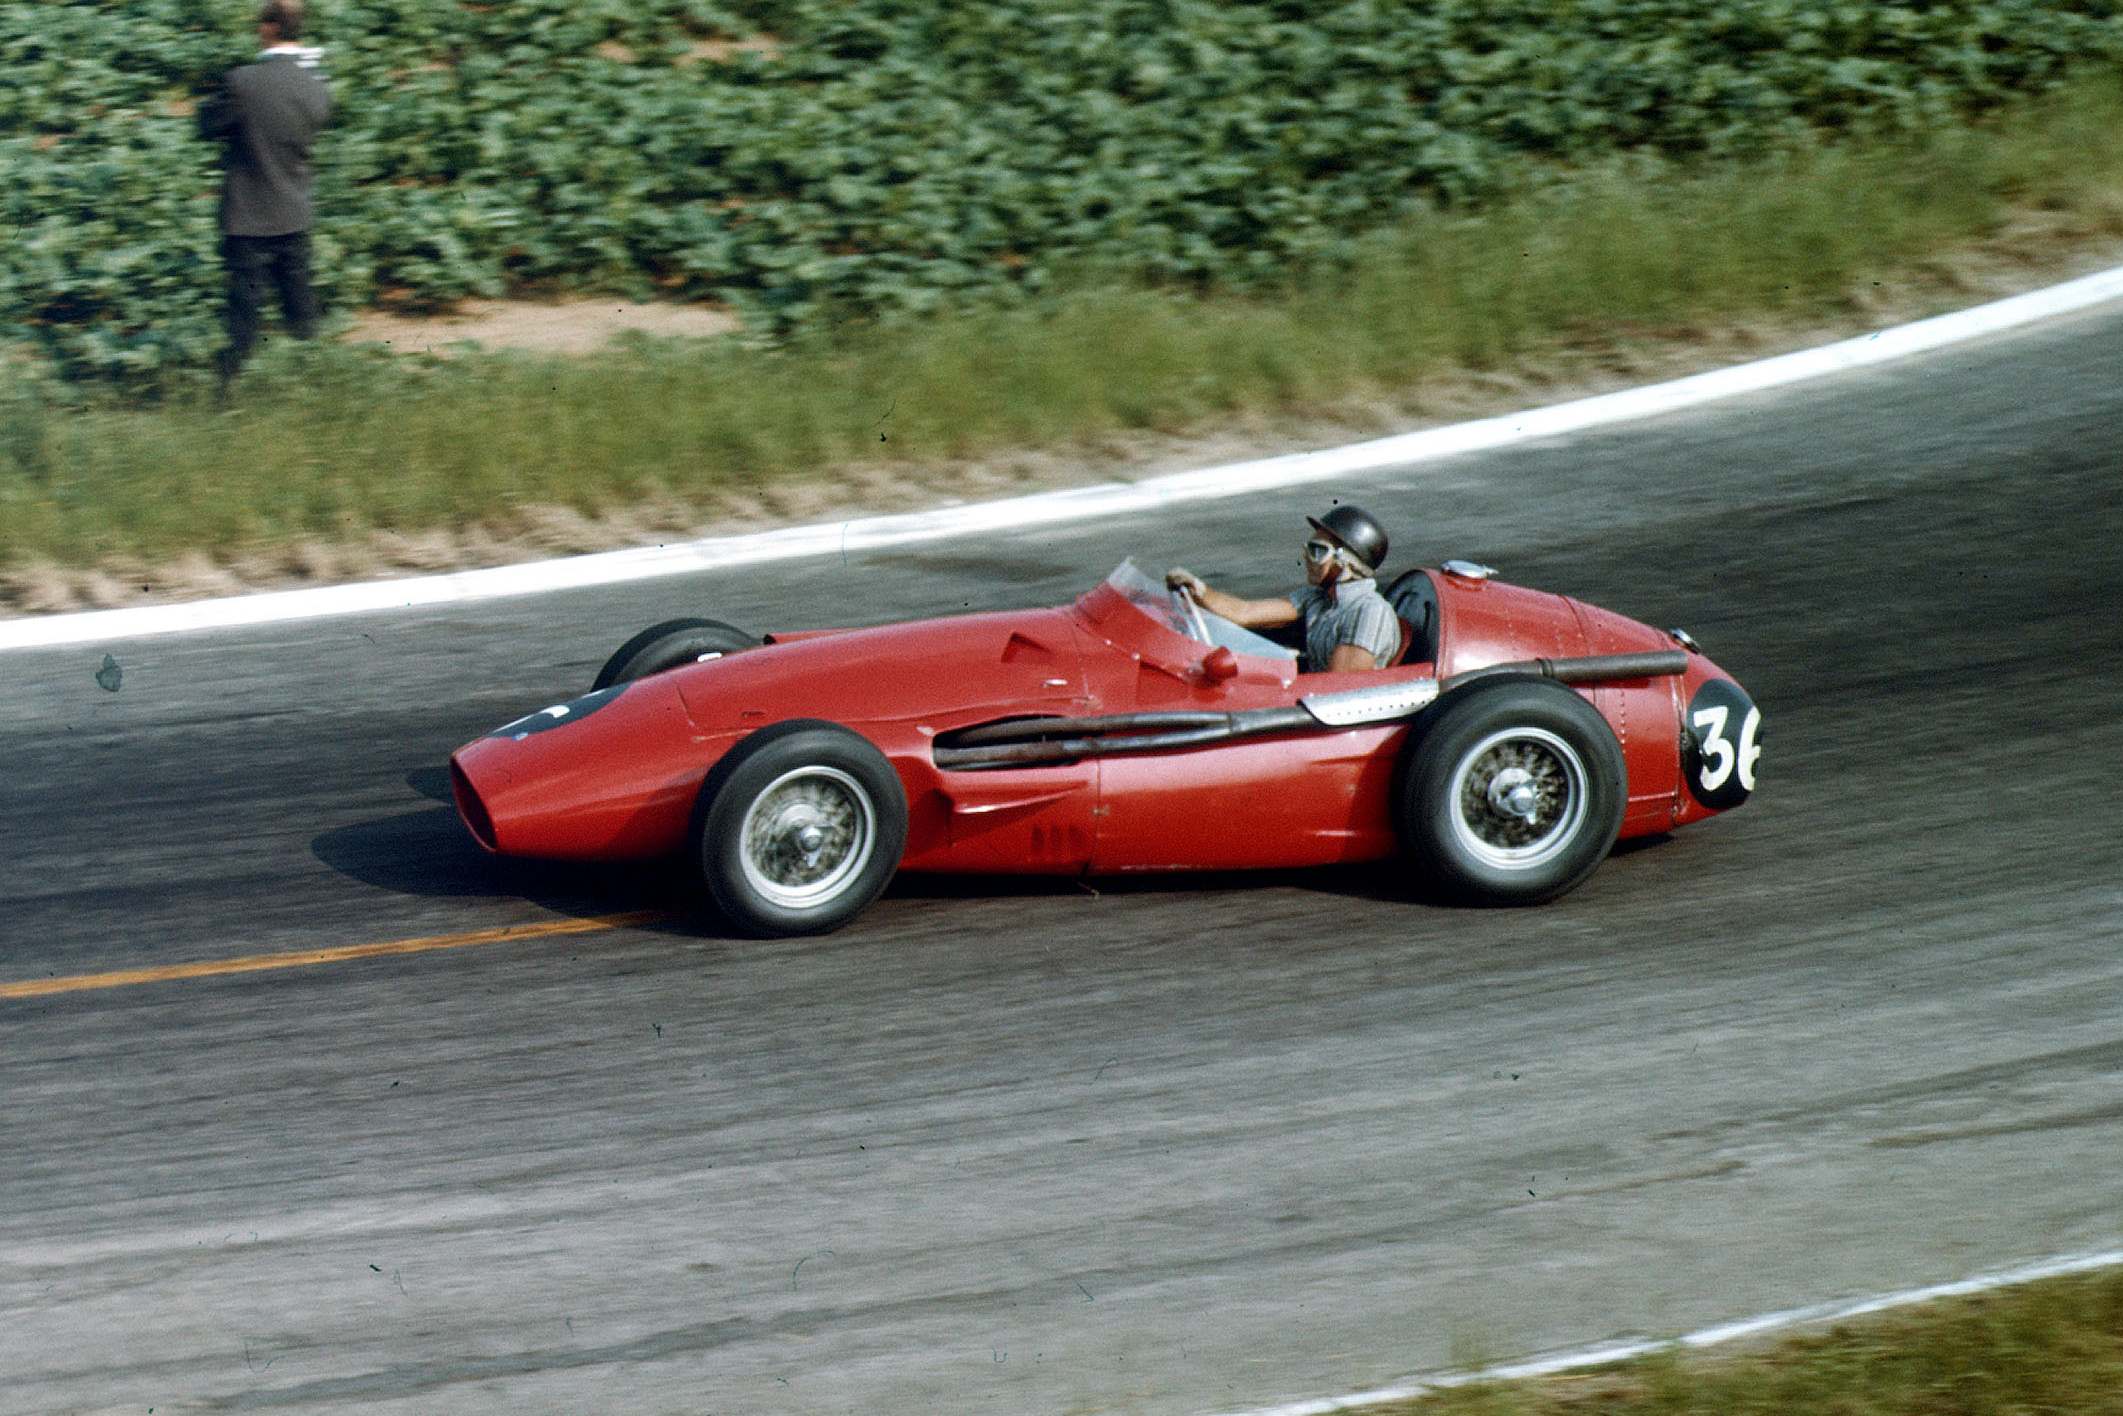 Phil Hill driving his Maserati 250F to 7th place.